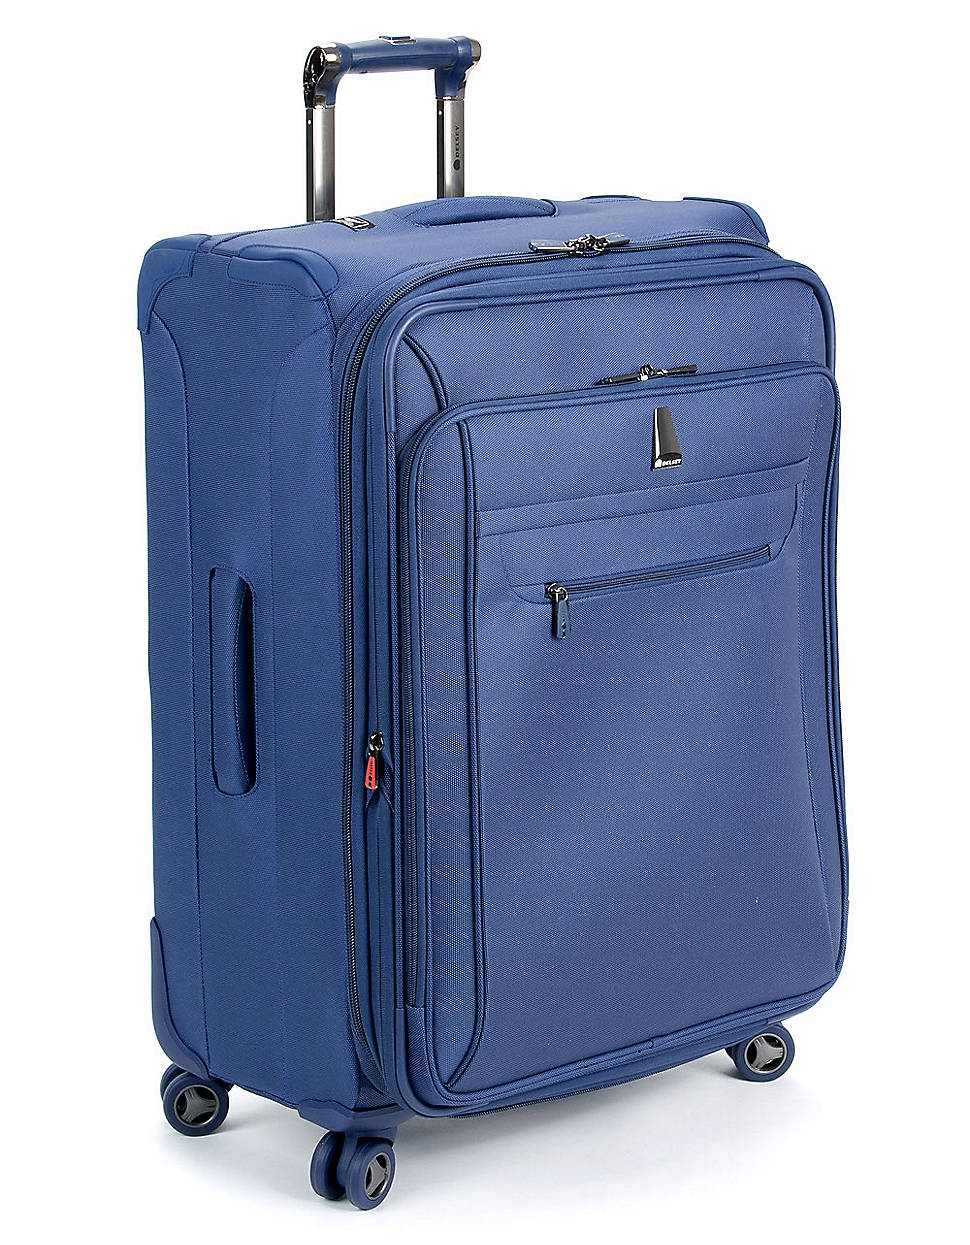 delsey helium xpert lite 25 expandable suiter trolley in blue for men lyst. Black Bedroom Furniture Sets. Home Design Ideas